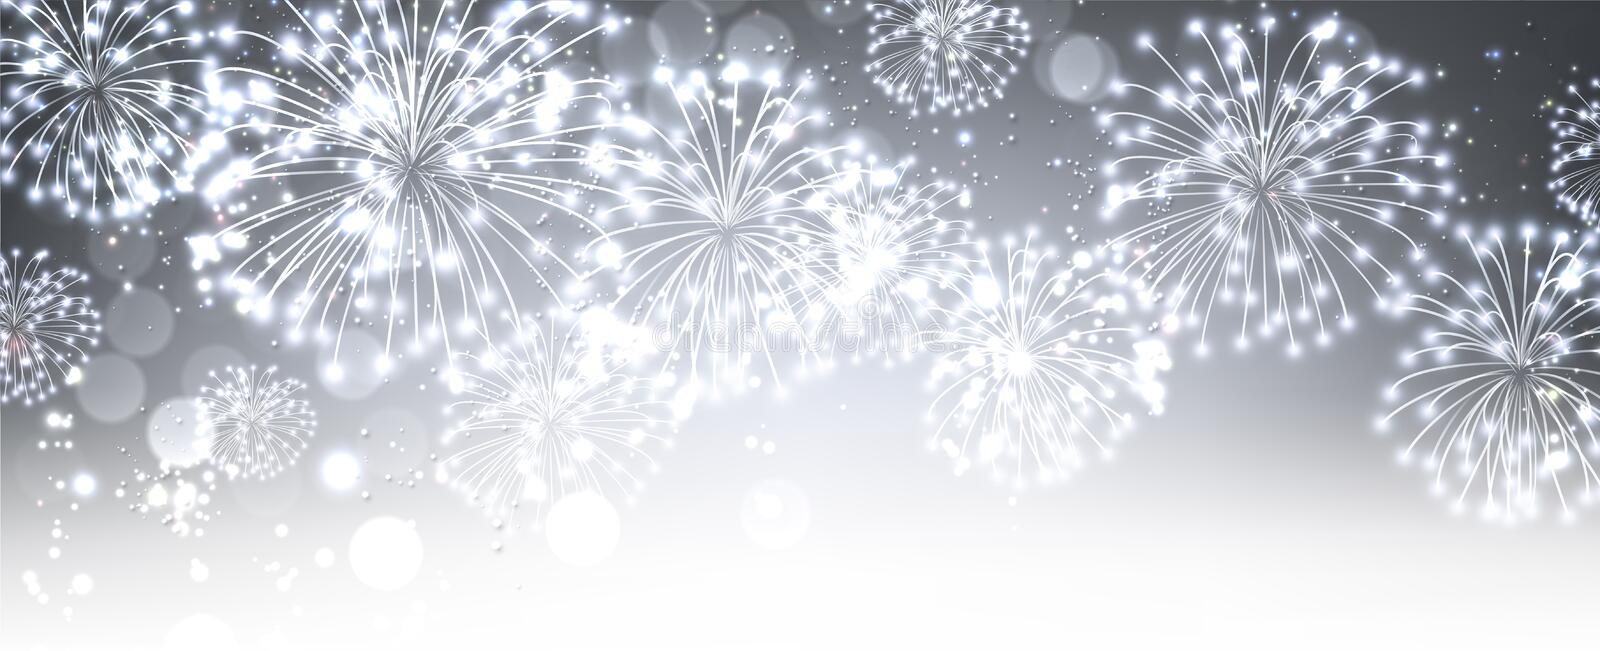 Gray festive banner with fireworks. Gray festive luminous banner with fireworks. Vector illustration royalty free illustration